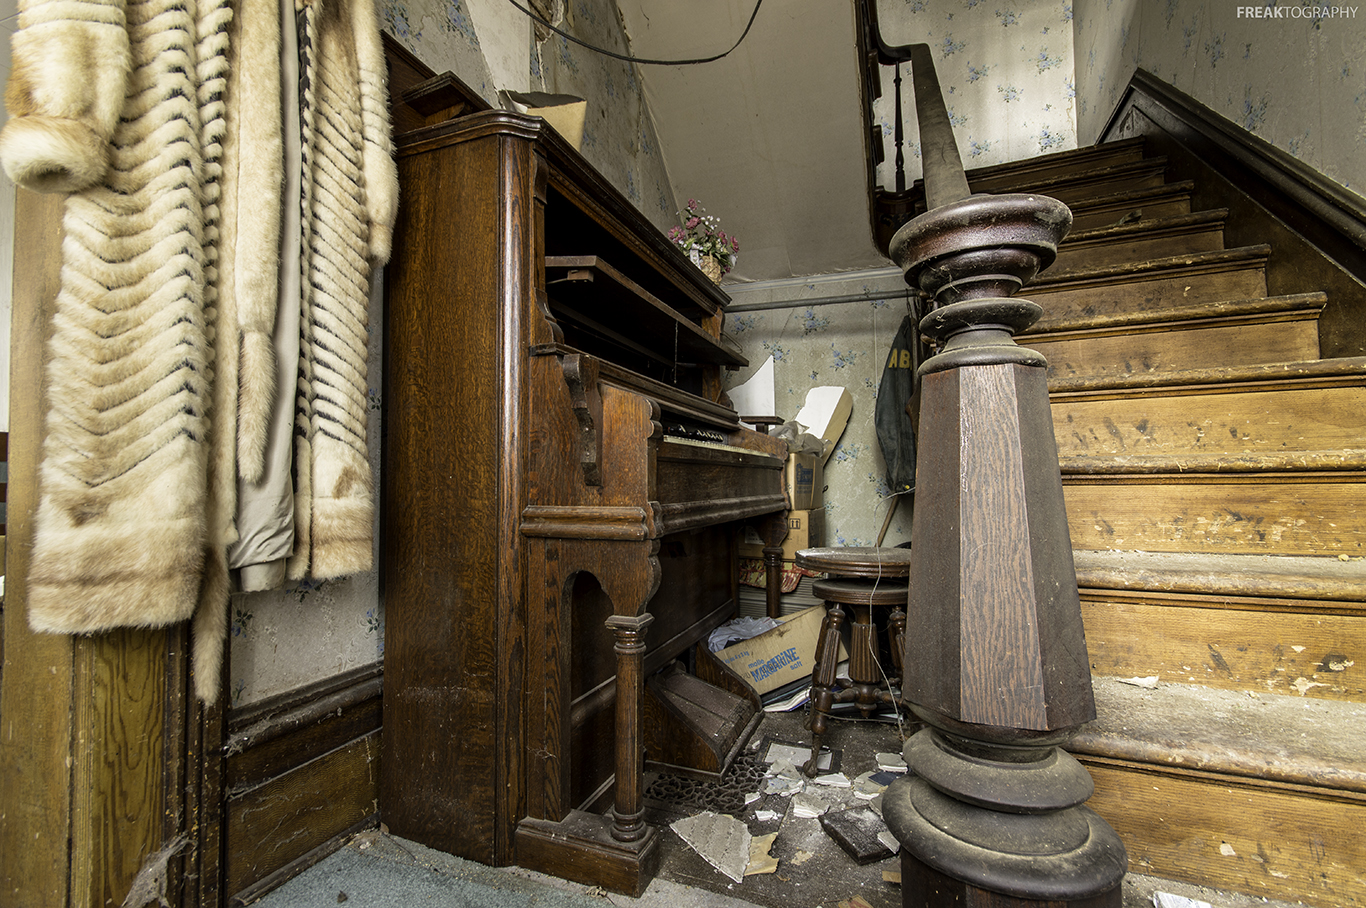 Abanoned House Stairs and Piano | Freaktography